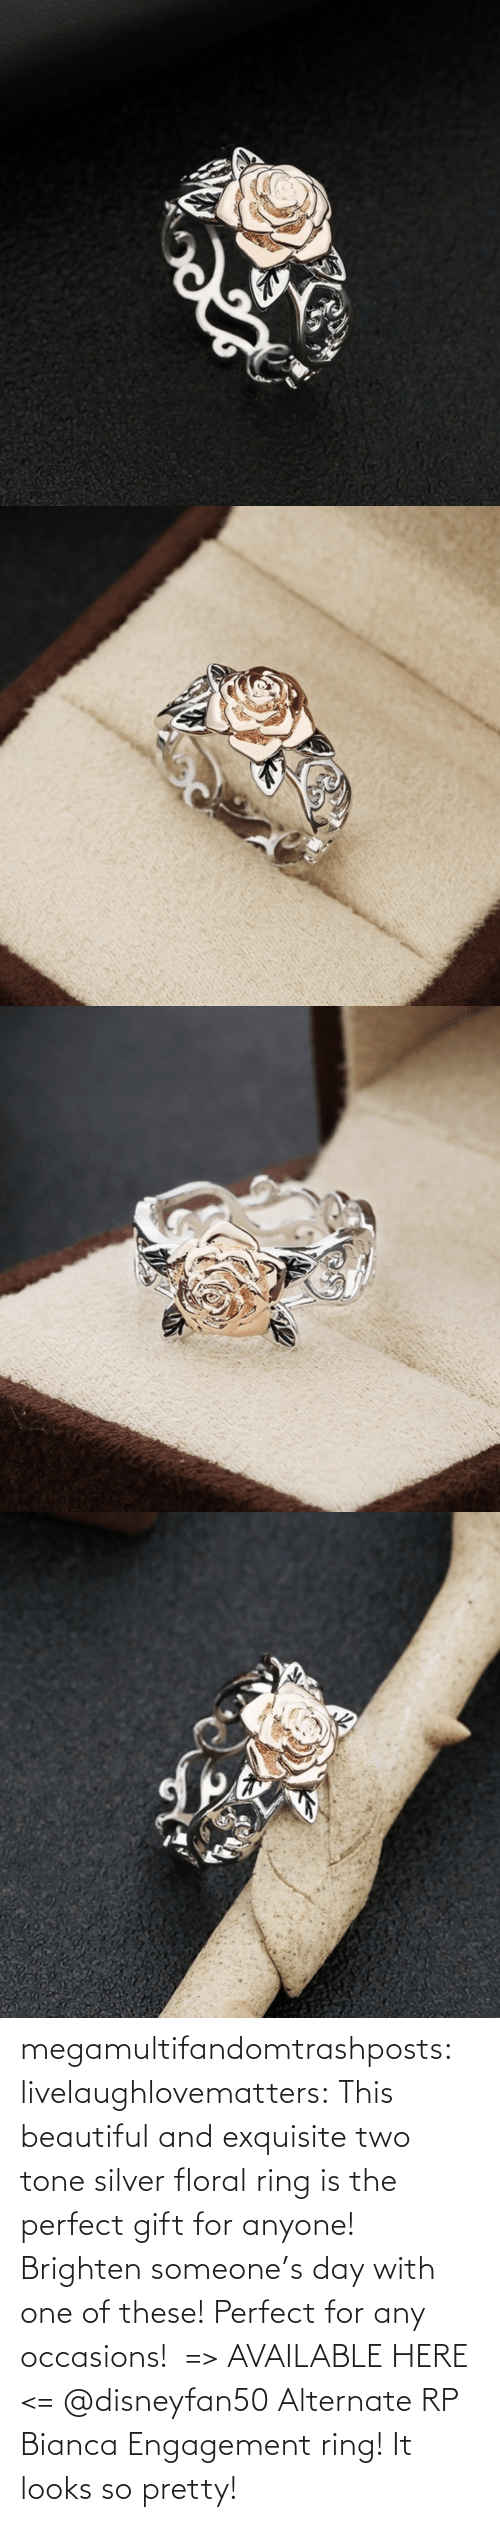 tone: megamultifandomtrashposts:  livelaughlovematters: This beautiful and exquisite two tone silver floral ring is the perfect gift for anyone! Brighten someone's day with one of these! Perfect for any occasions!  => AVAILABLE HERE <=    @disneyfan50 Alternate RP Bianca Engagement ring! It looks so pretty!